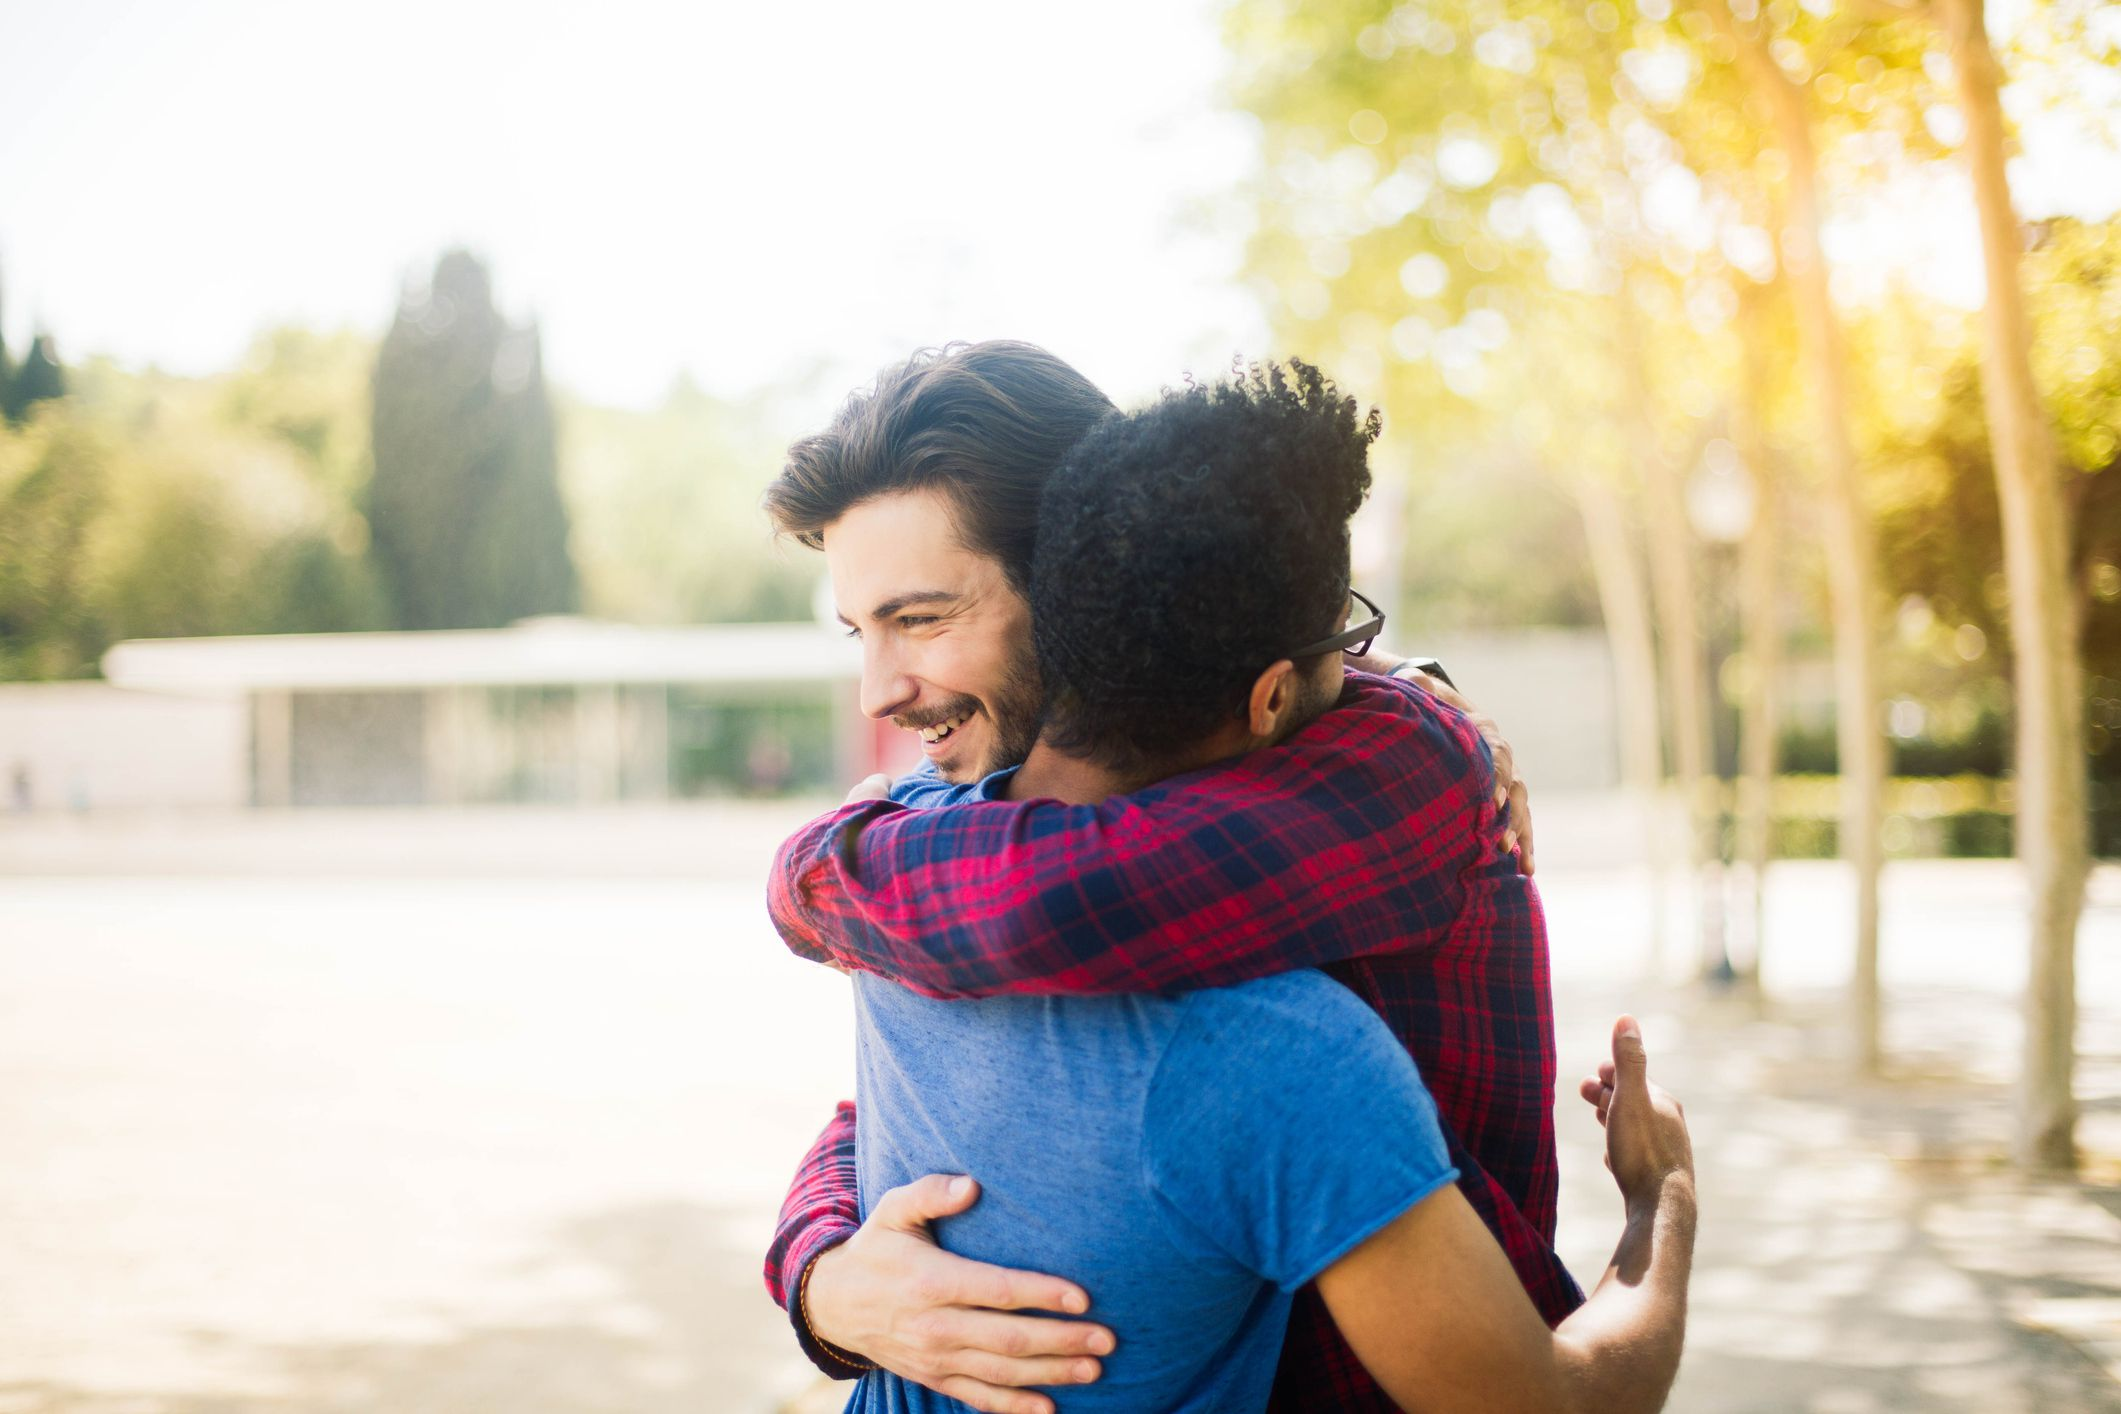 hug friends hugging meet french france streets barcelona getty say email tempura gettyimages